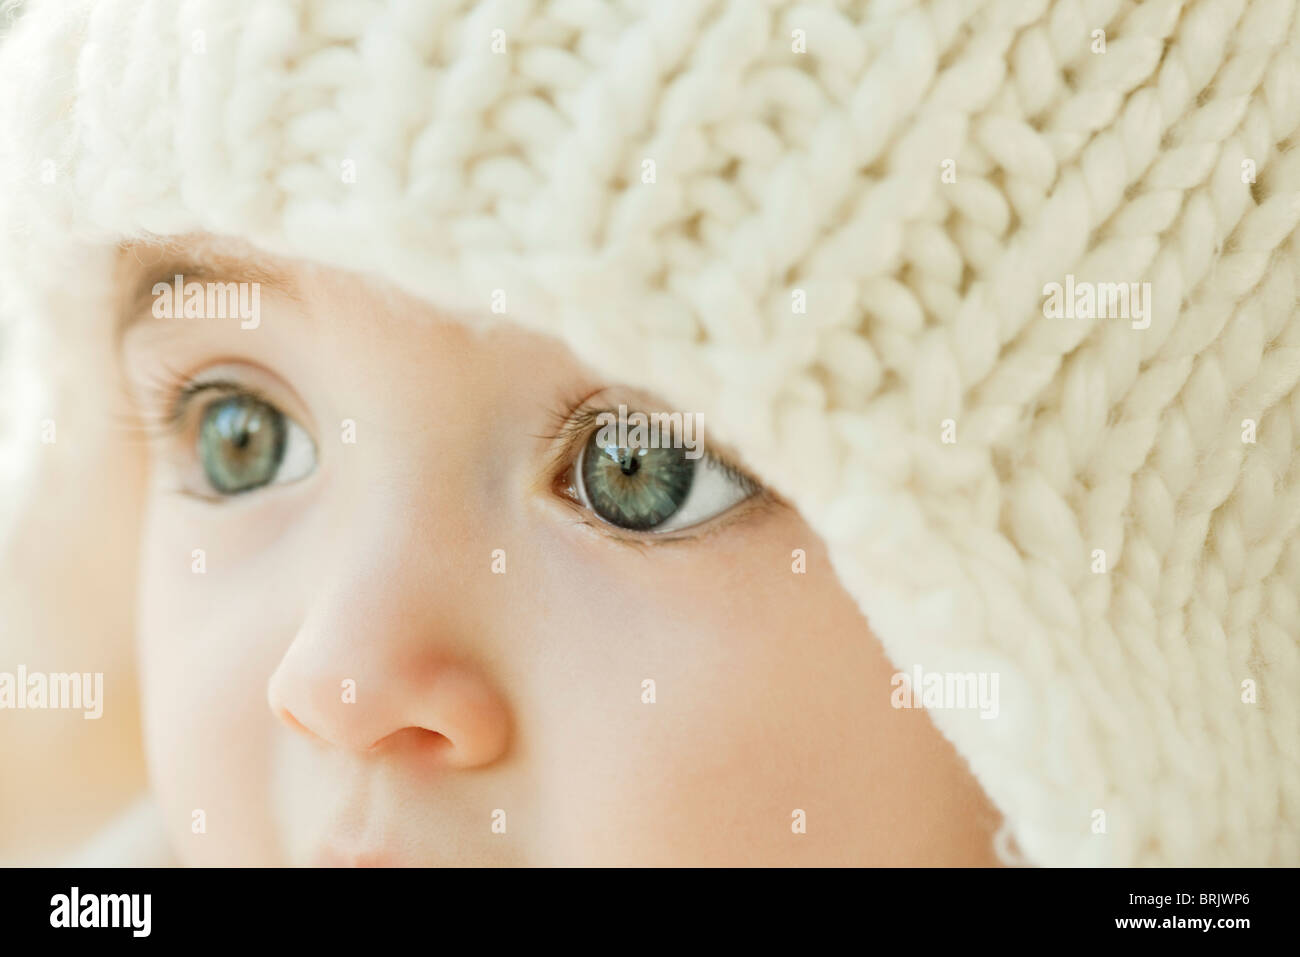 4dd5a0dde Babies Wearing Hats Stock Photos & Babies Wearing Hats Stock Images ...